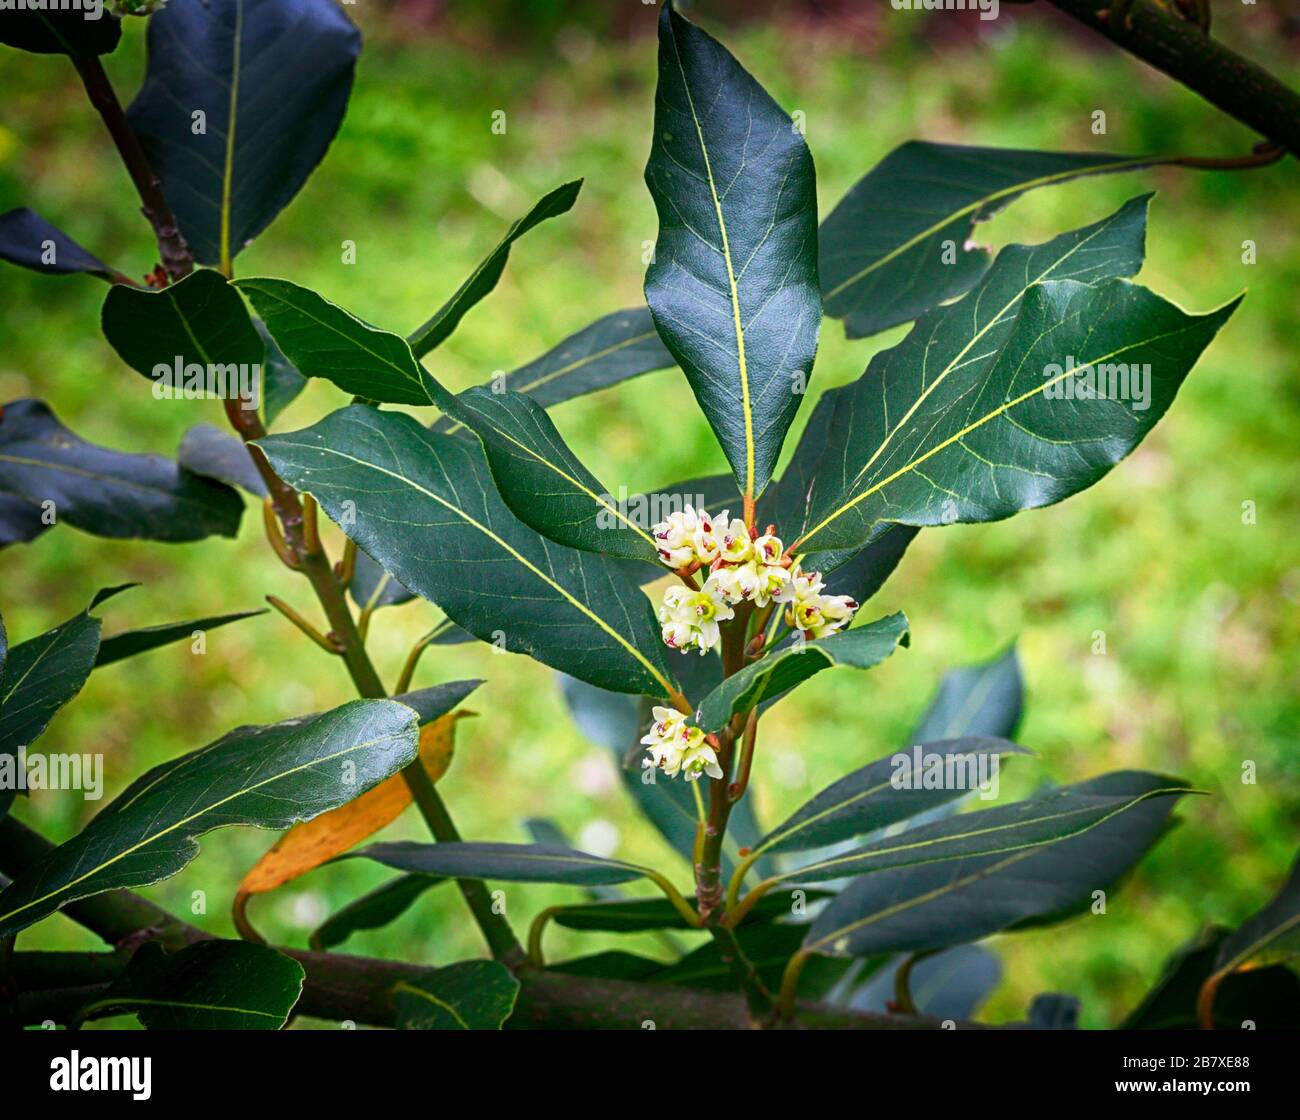 Blooming Bay Tree Bay Leaves With Blossom Flowers Spring